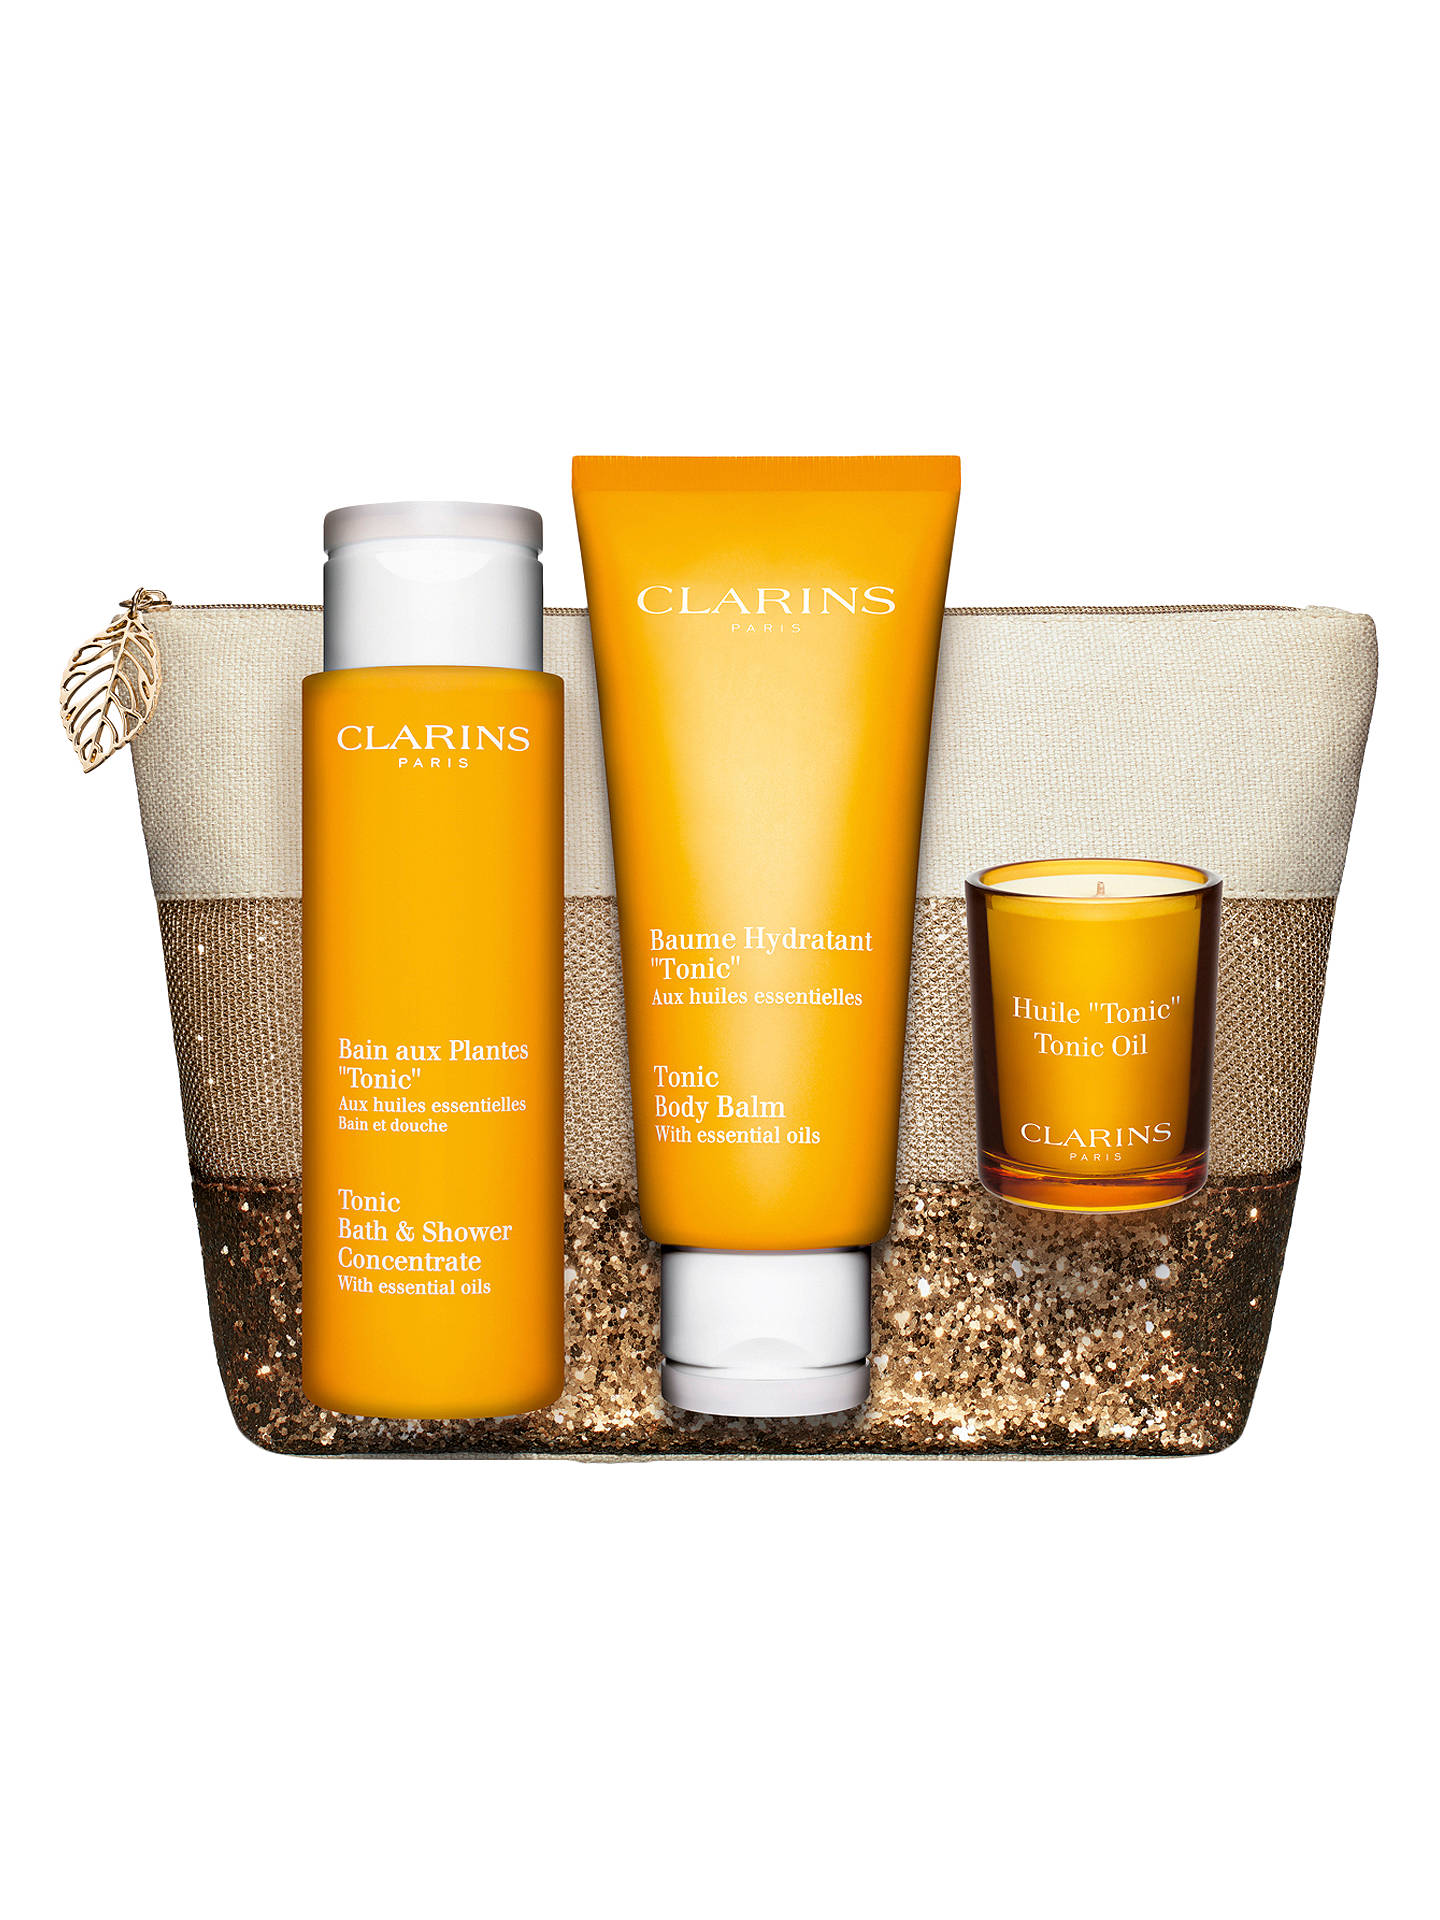 Clarins Ultimate Pampering Bath Amp Body Gift Set At John